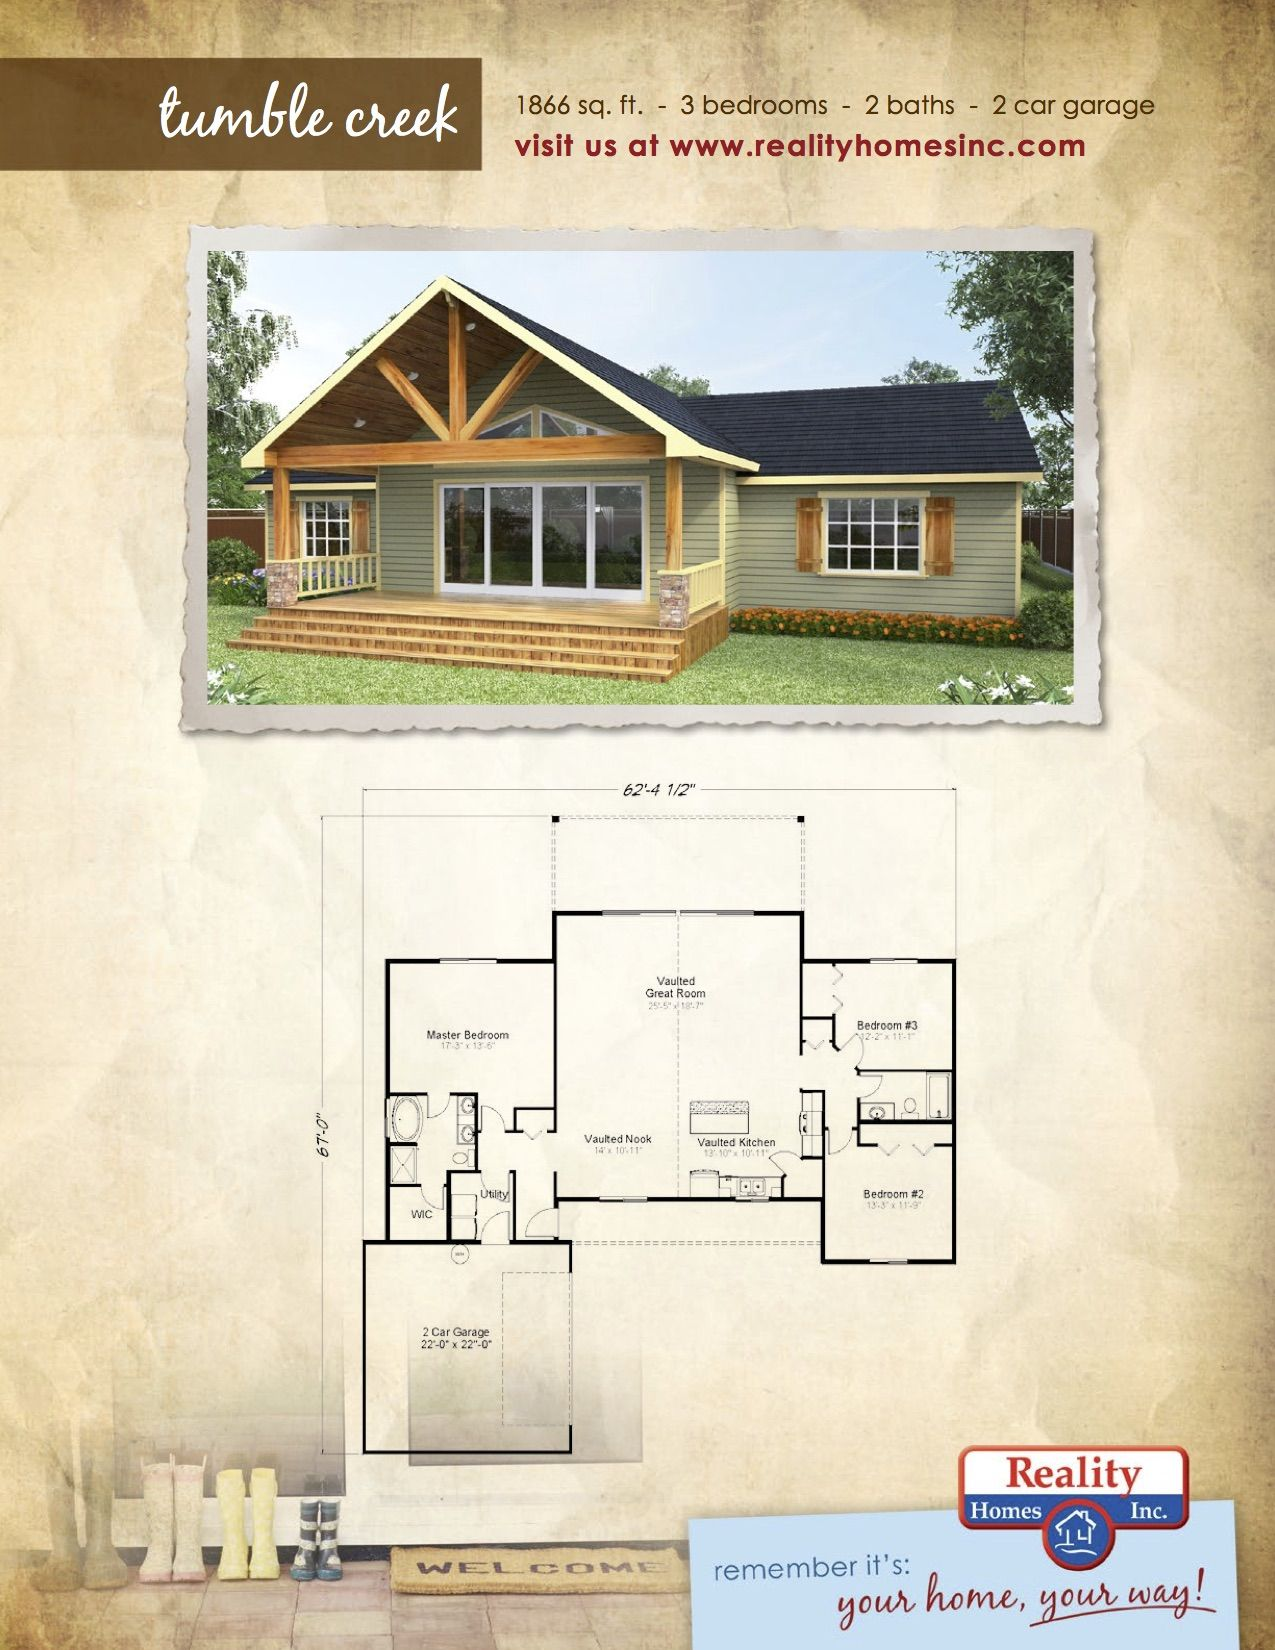 Inexpensive Homes Build Cheapest House Dream Designs Home Design Cabin About Cheap Plans Your Own Plan Custom Built Homes House Plans Floor Plans